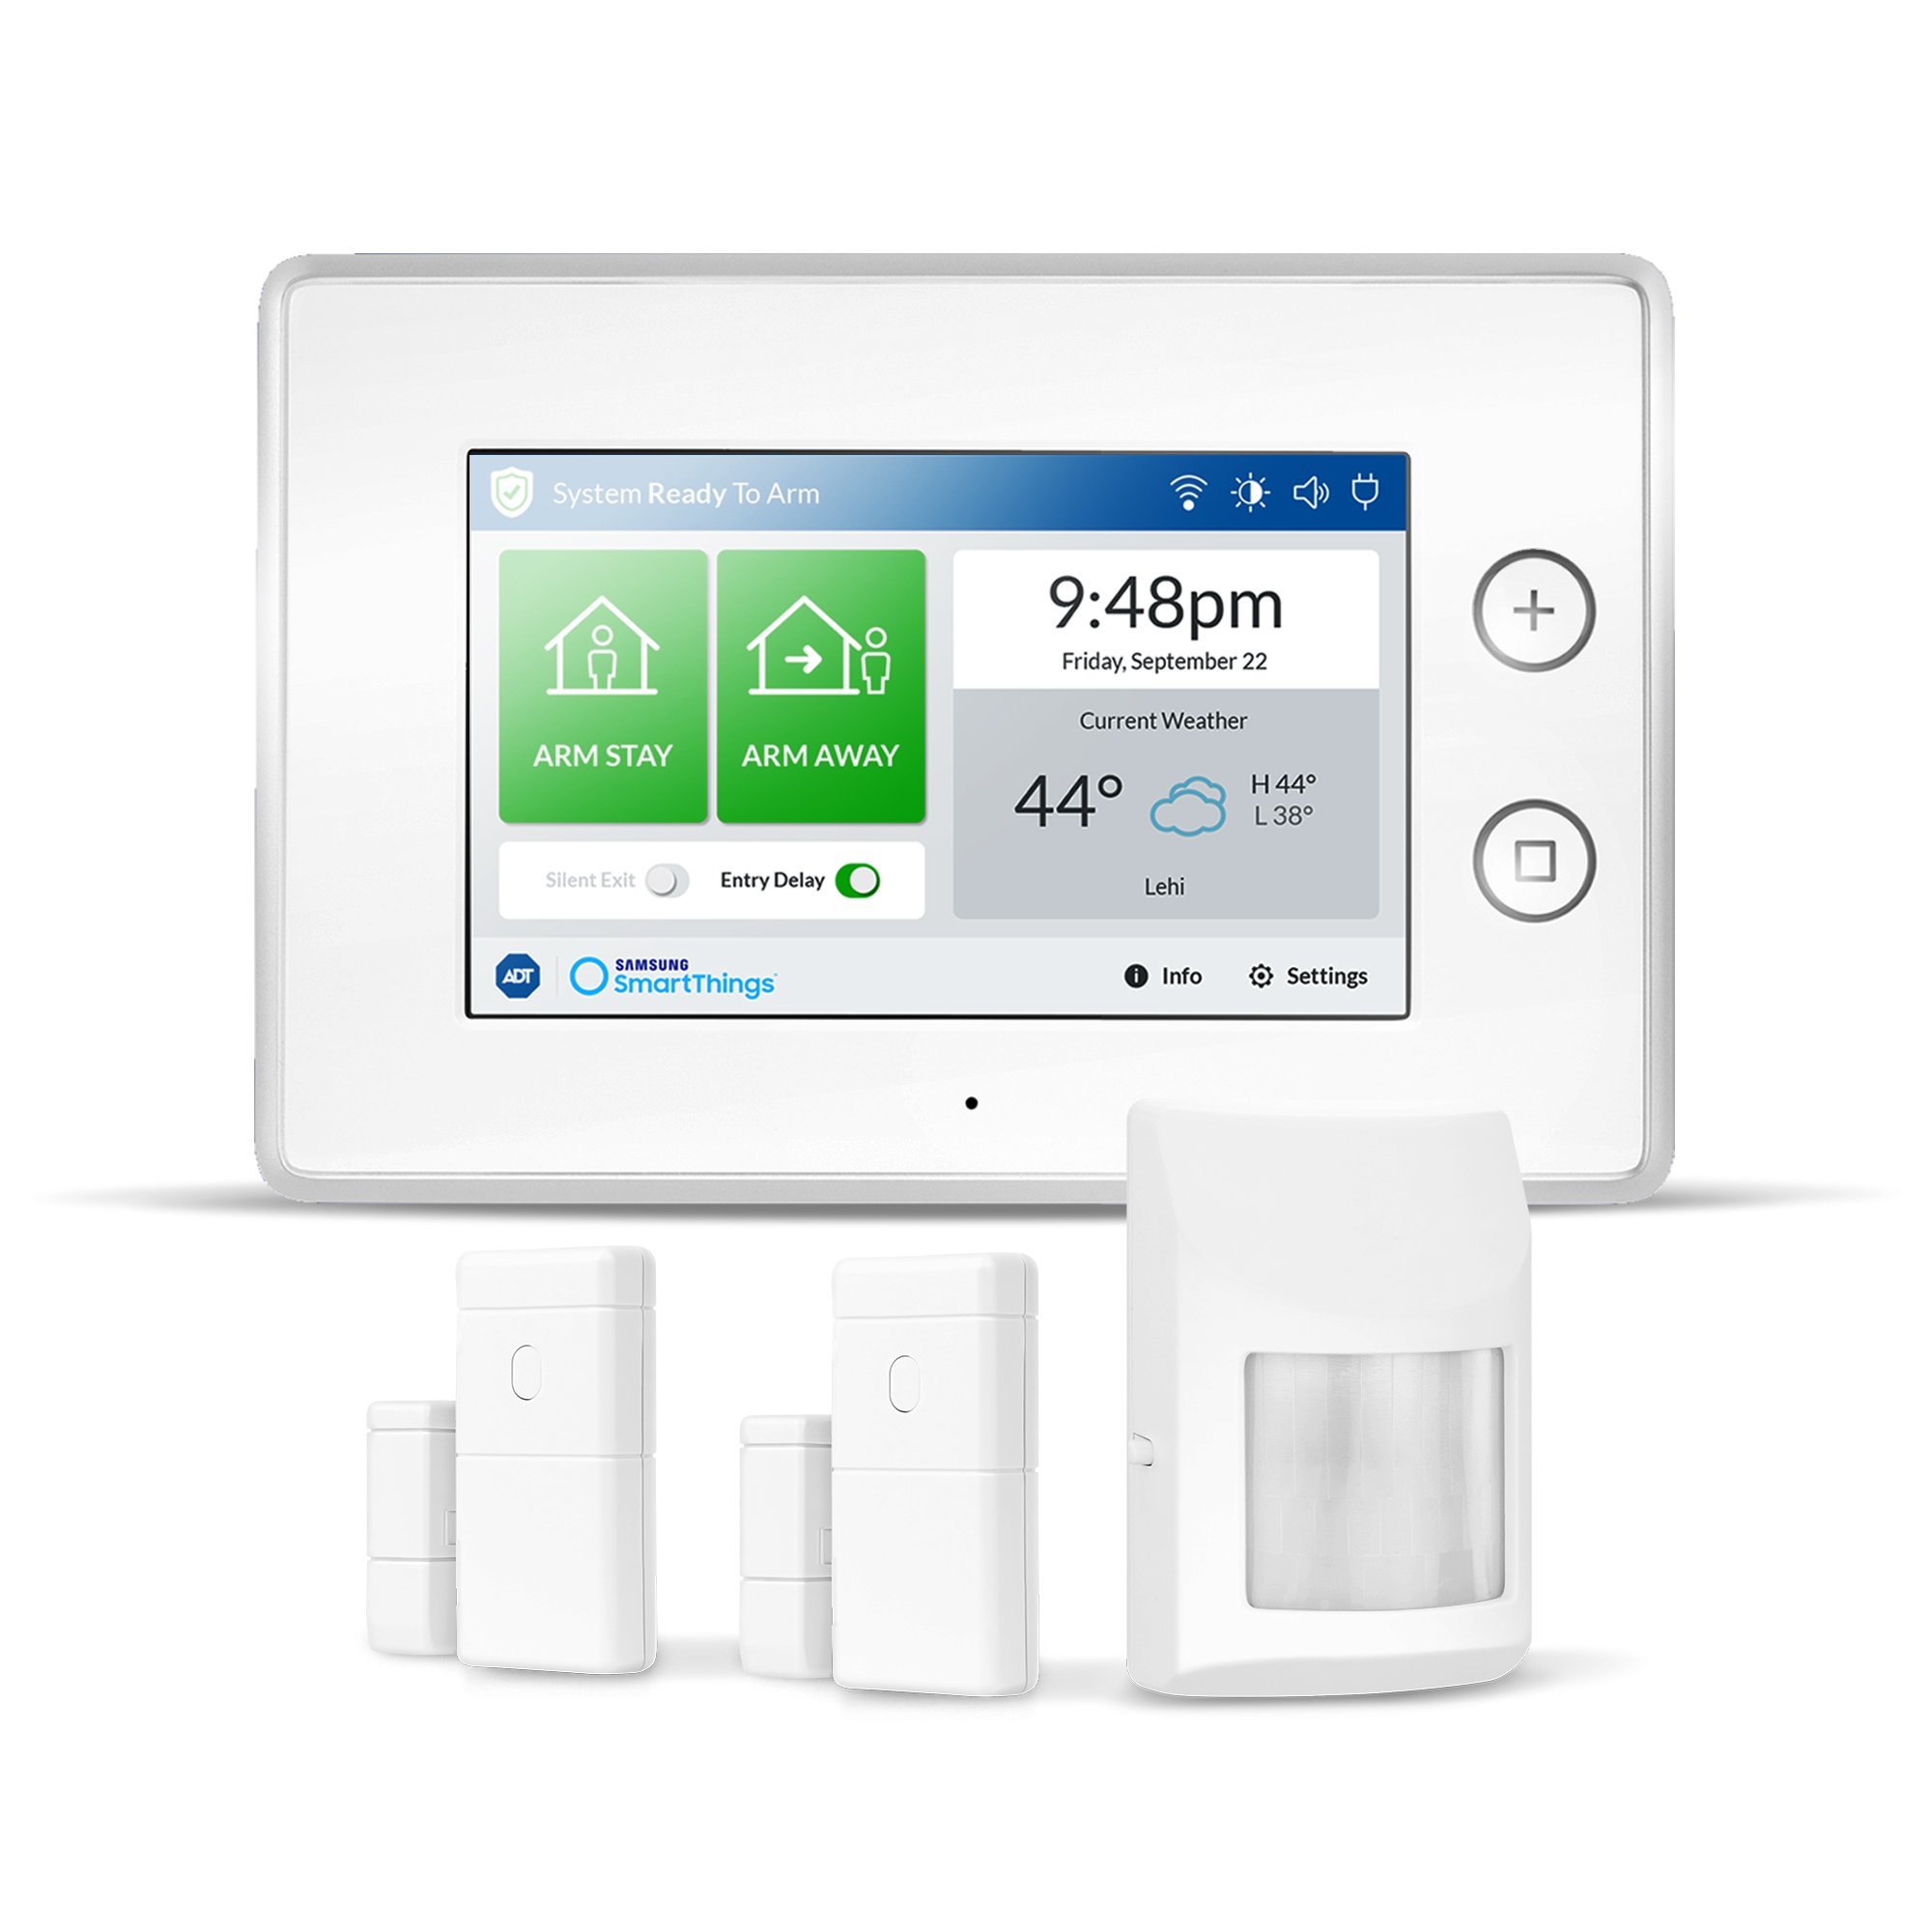 Samsung SmartThings Wireless Security Detector